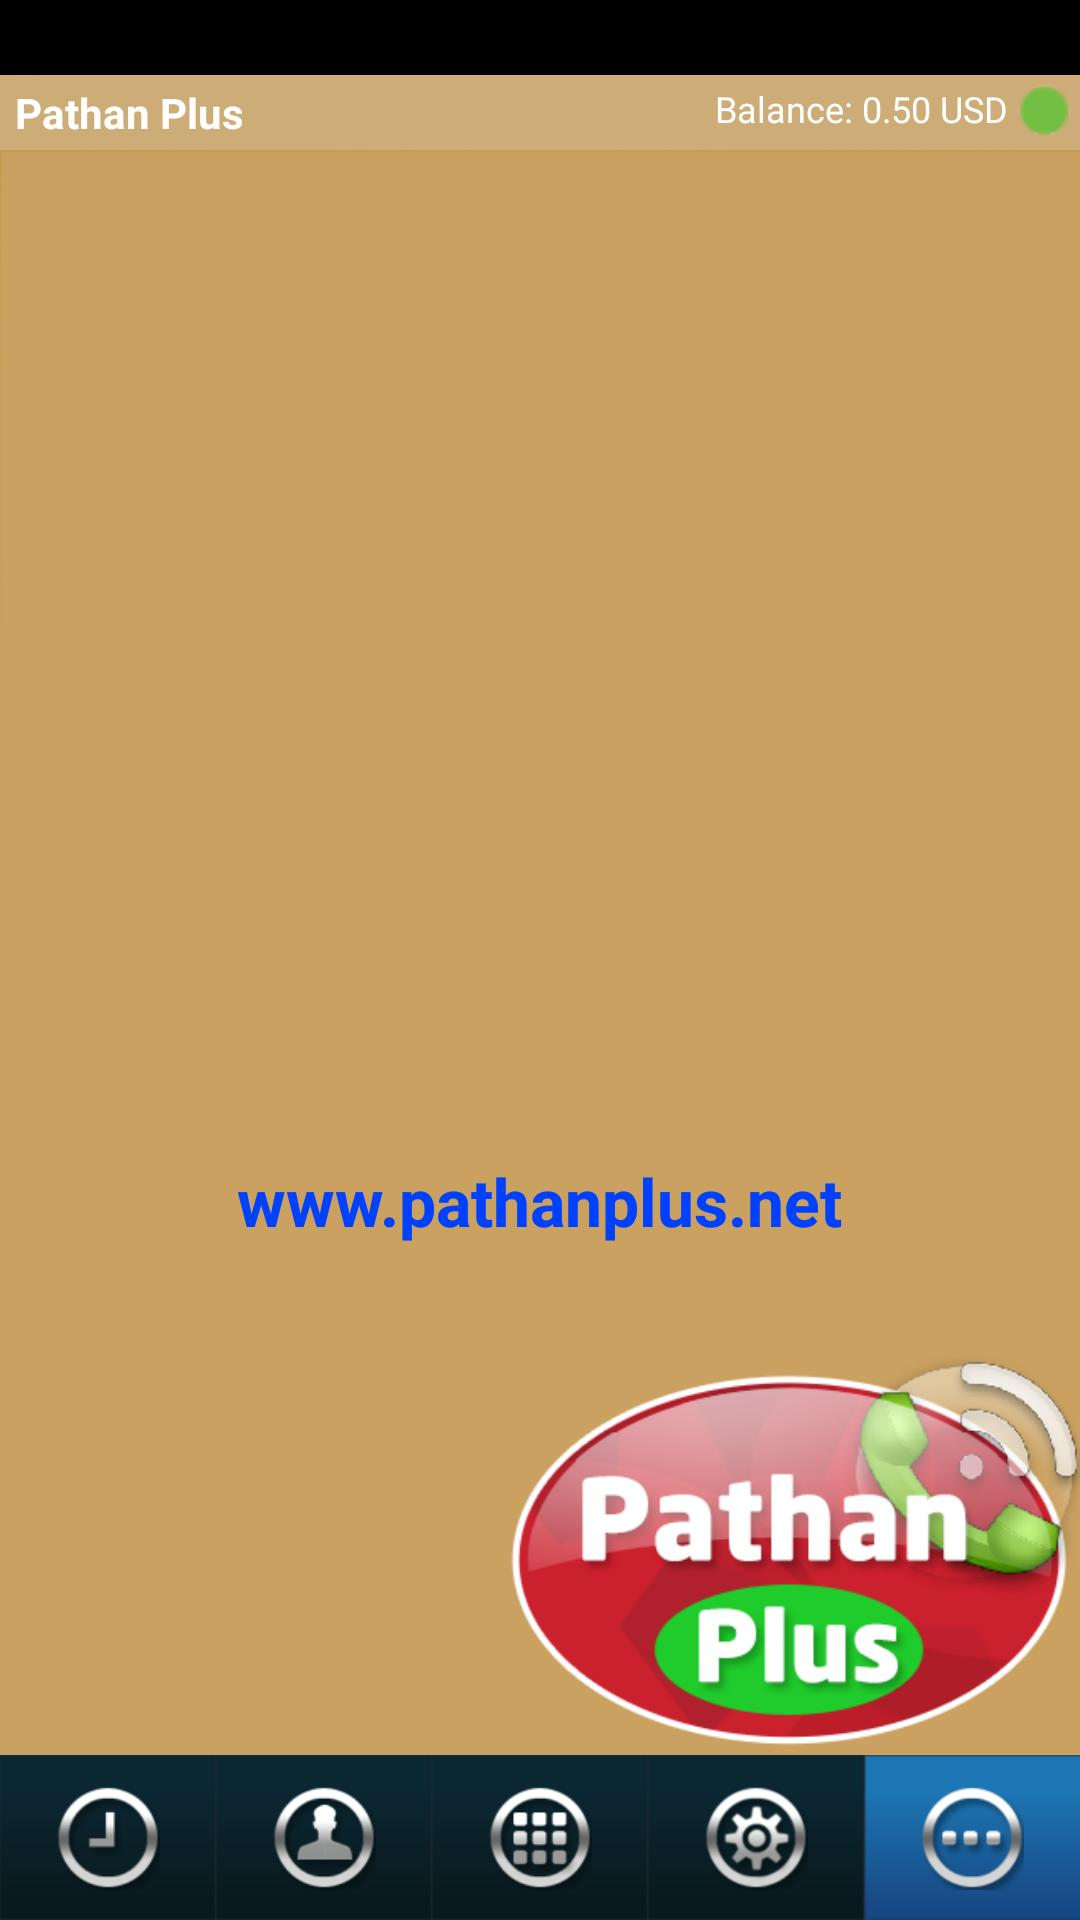 Pathan Plus for Android - APK Download